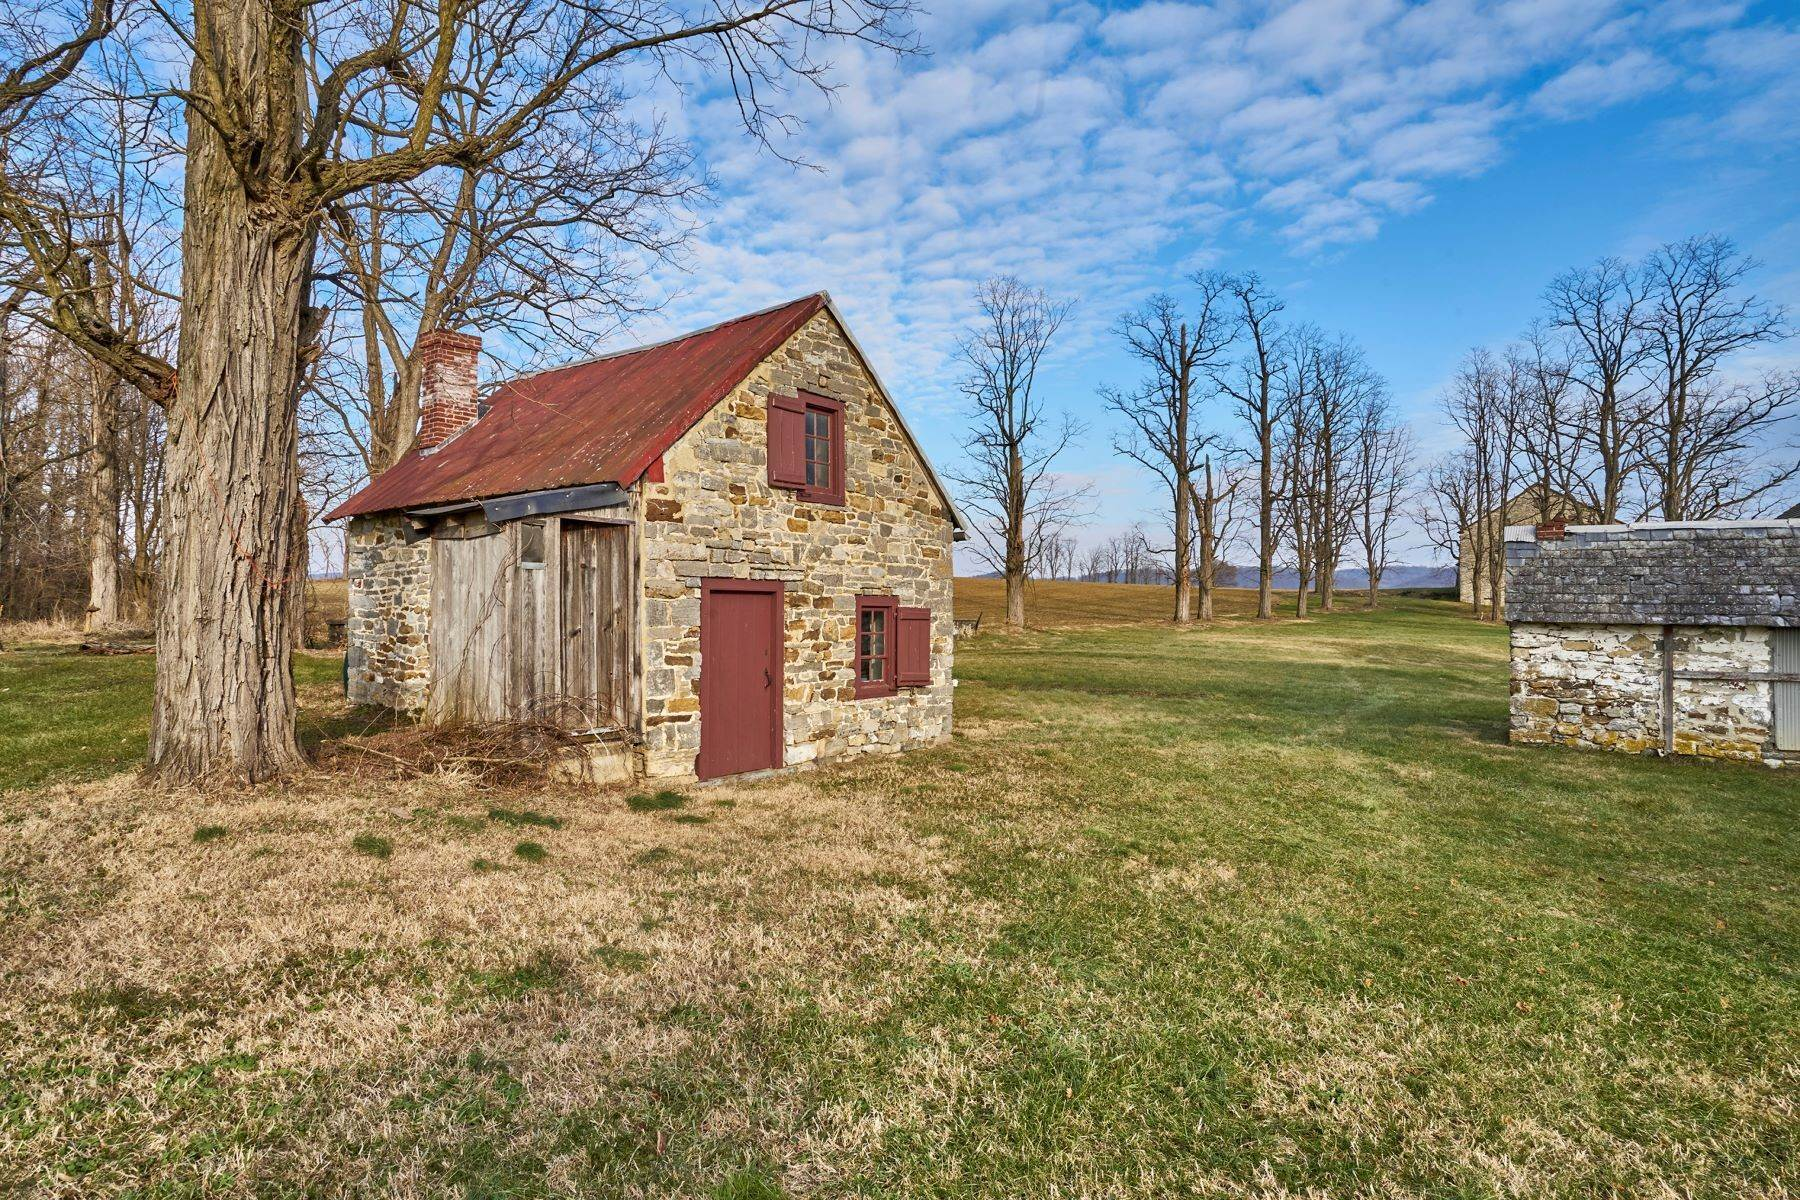 38. Single Family Homes for Sale at The Kauffman Farm 293 KAUFFMAN RD Oley, Pennsylvania 19547 United States